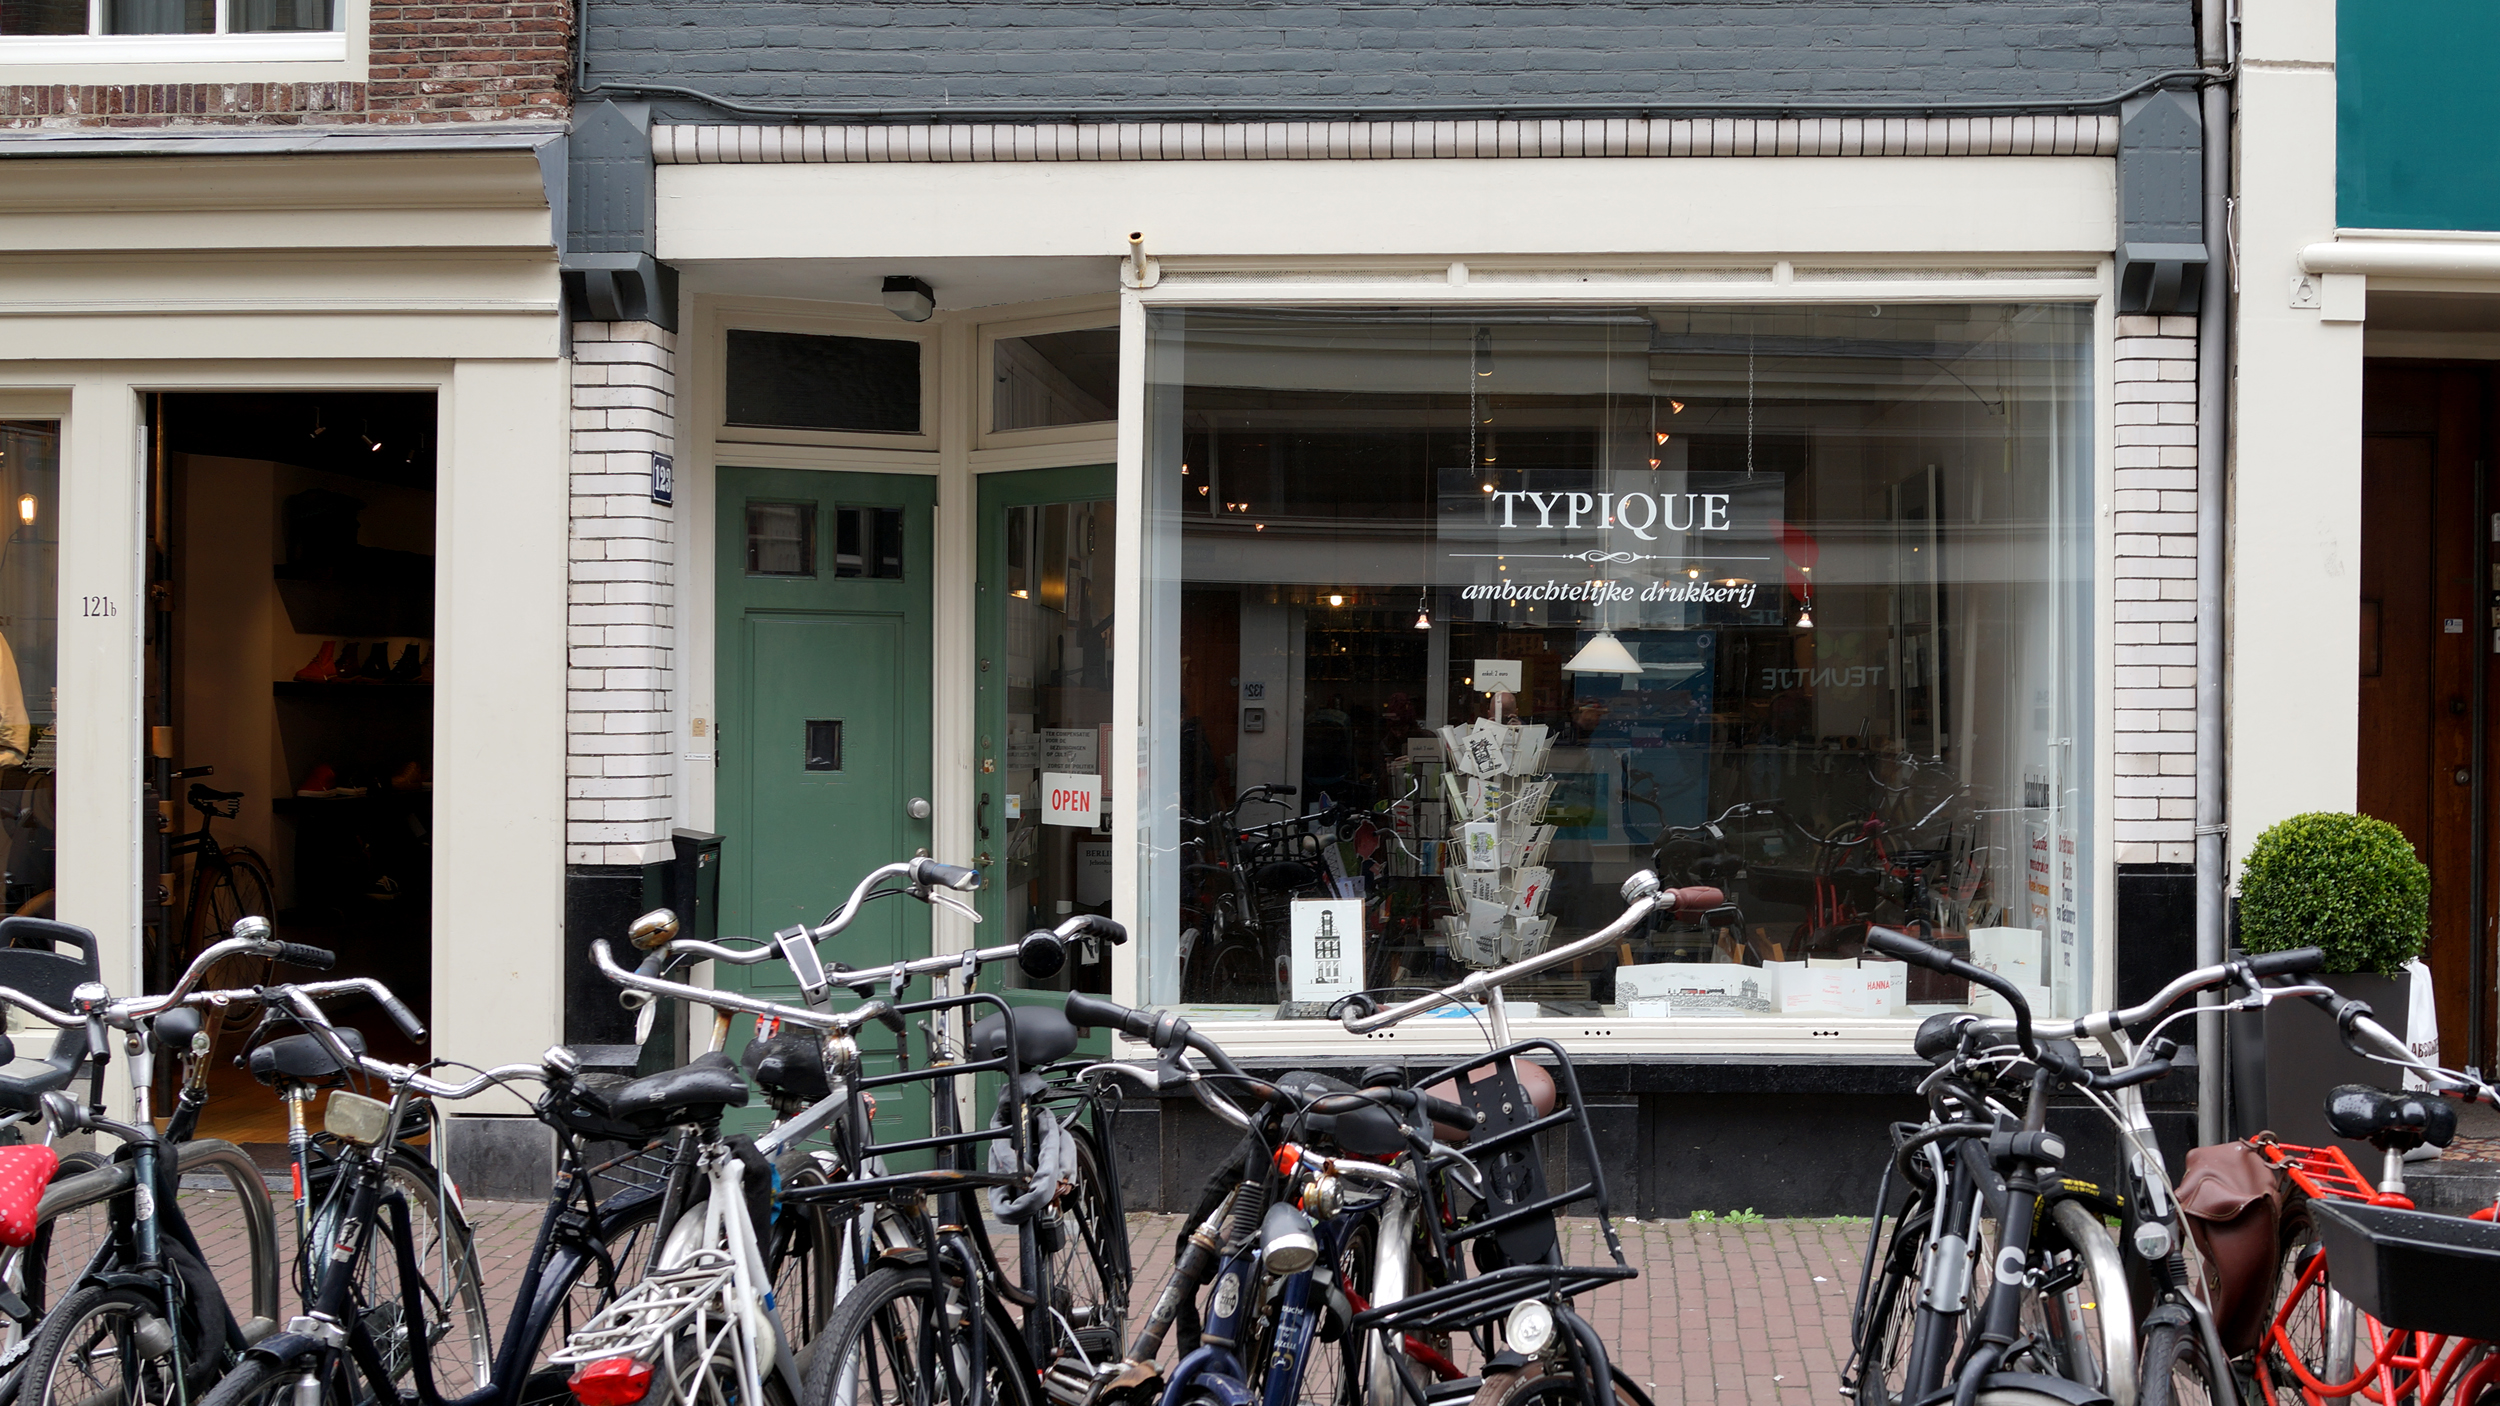 Typique letterpress shop, Amsterdam